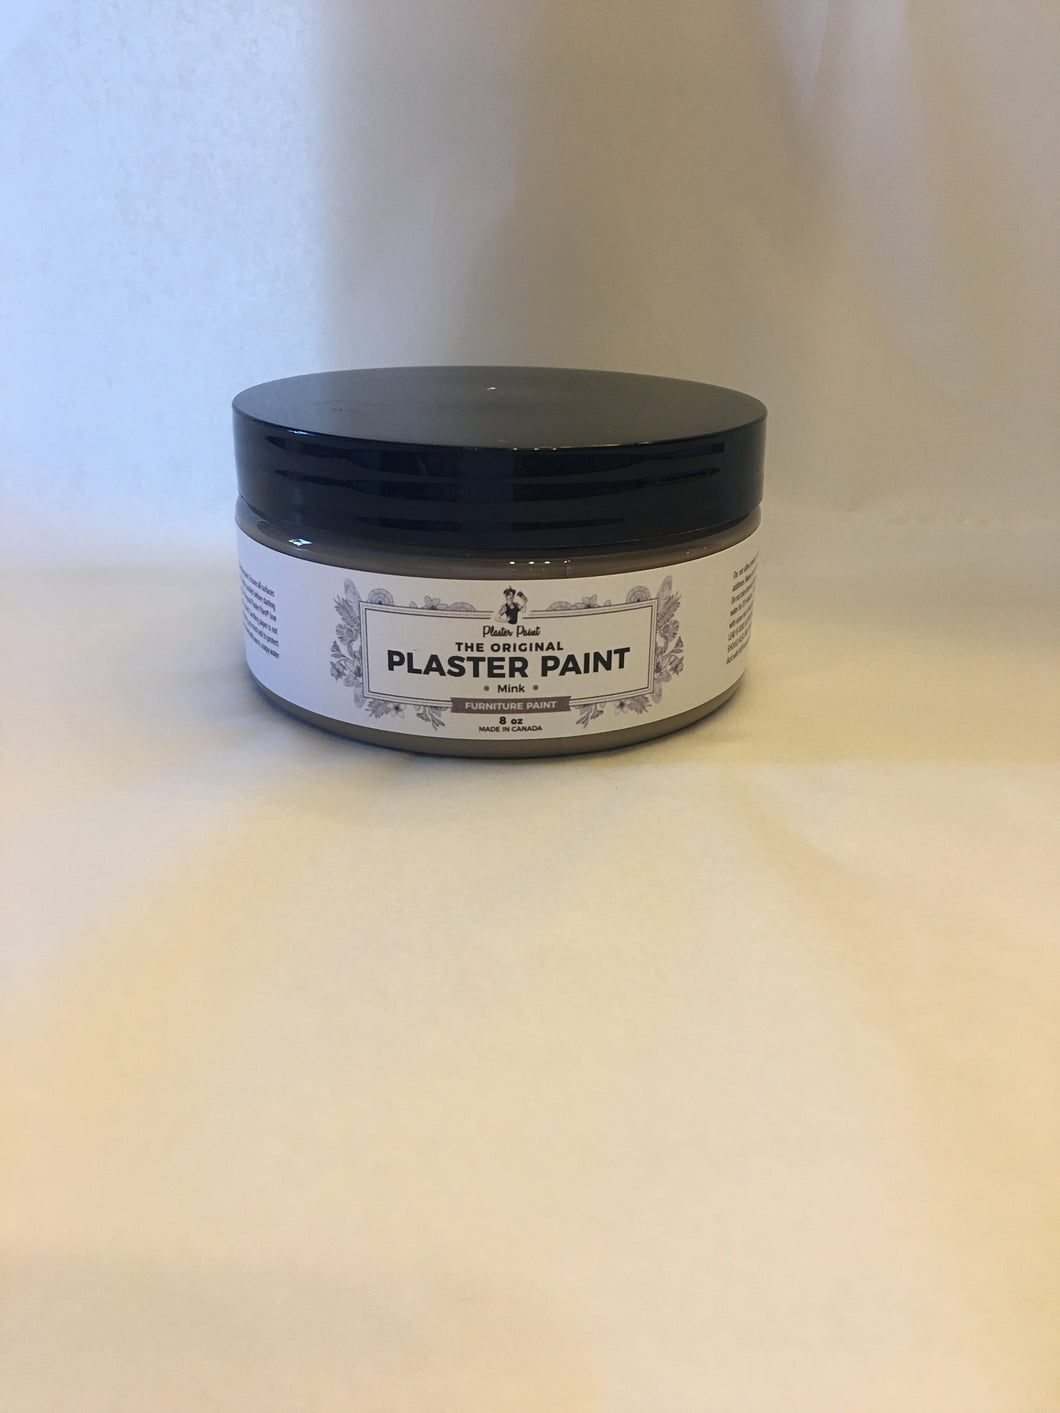 Original Plaster Paint - Mink